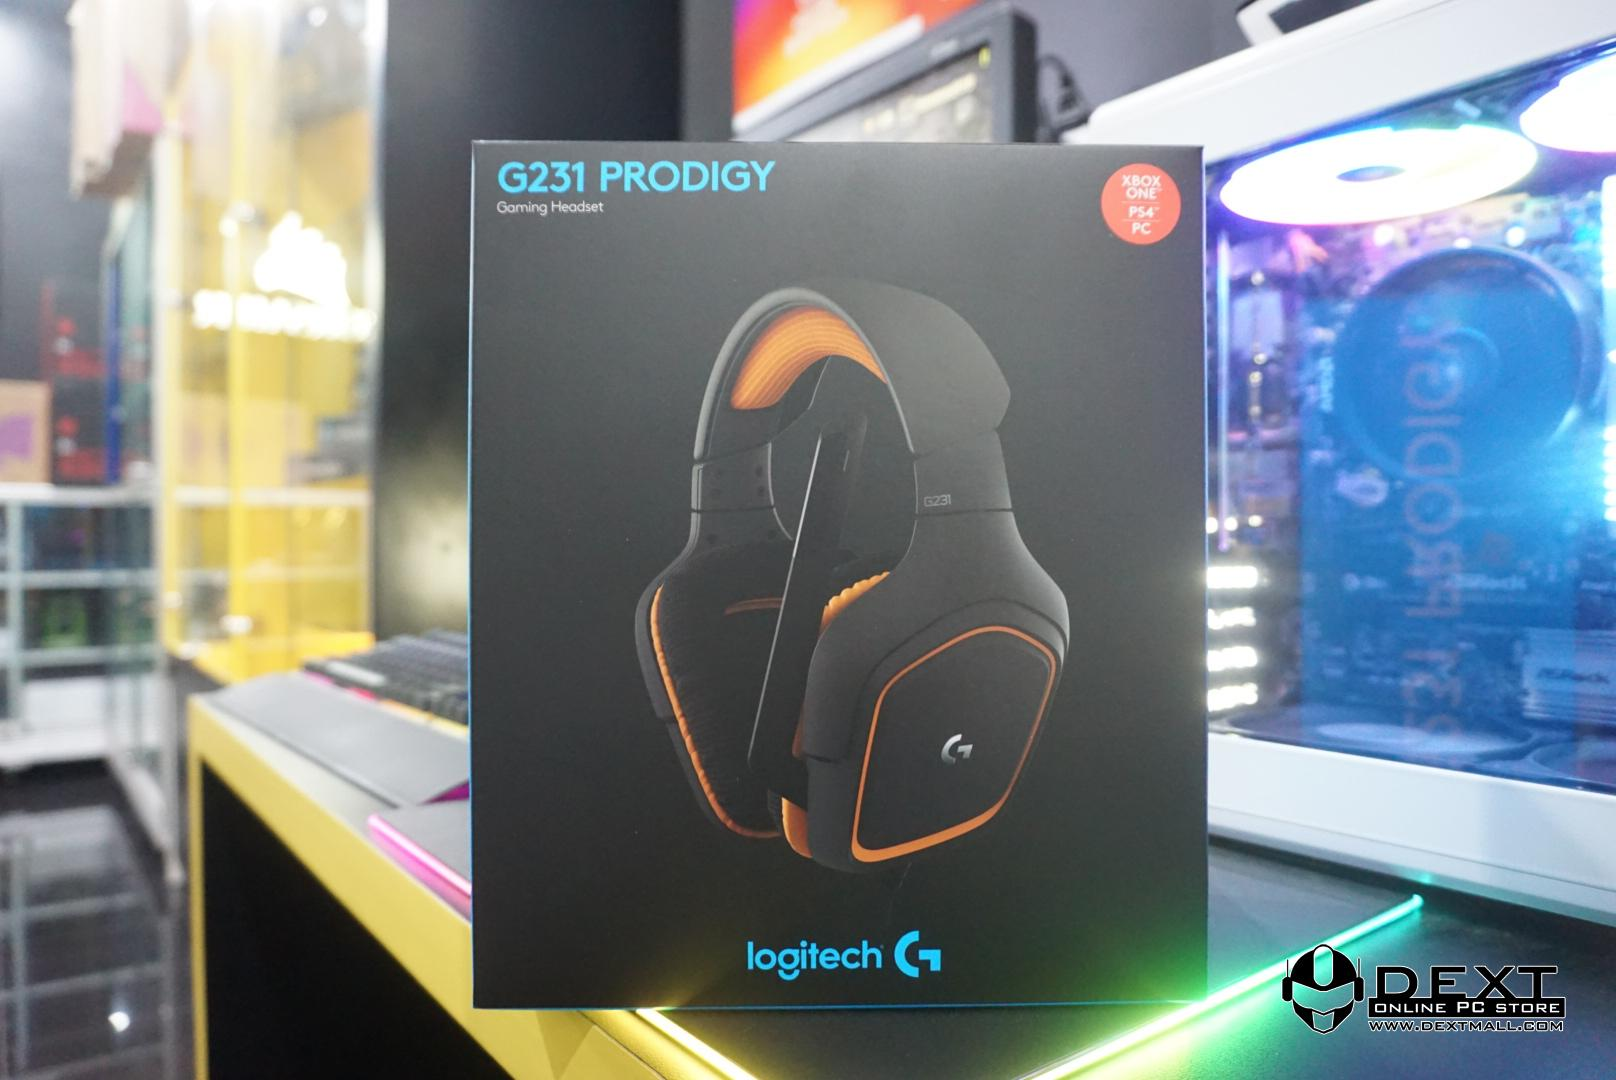 Logitech G231 Prodigy - Gaming Headset